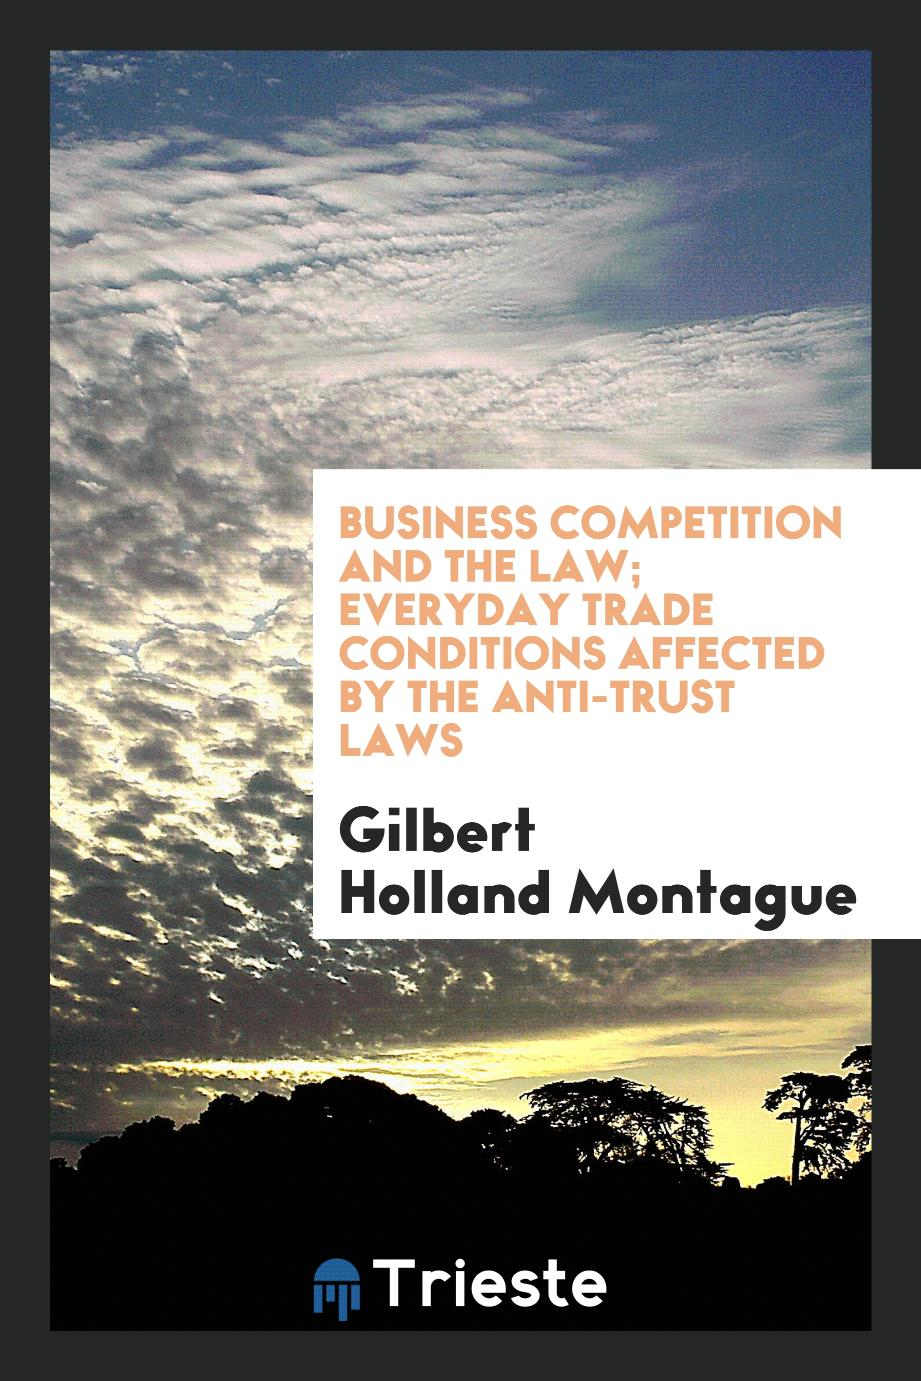 Business Competition and the Law; Everyday Trade Conditions Affected by the Anti-Trust Laws